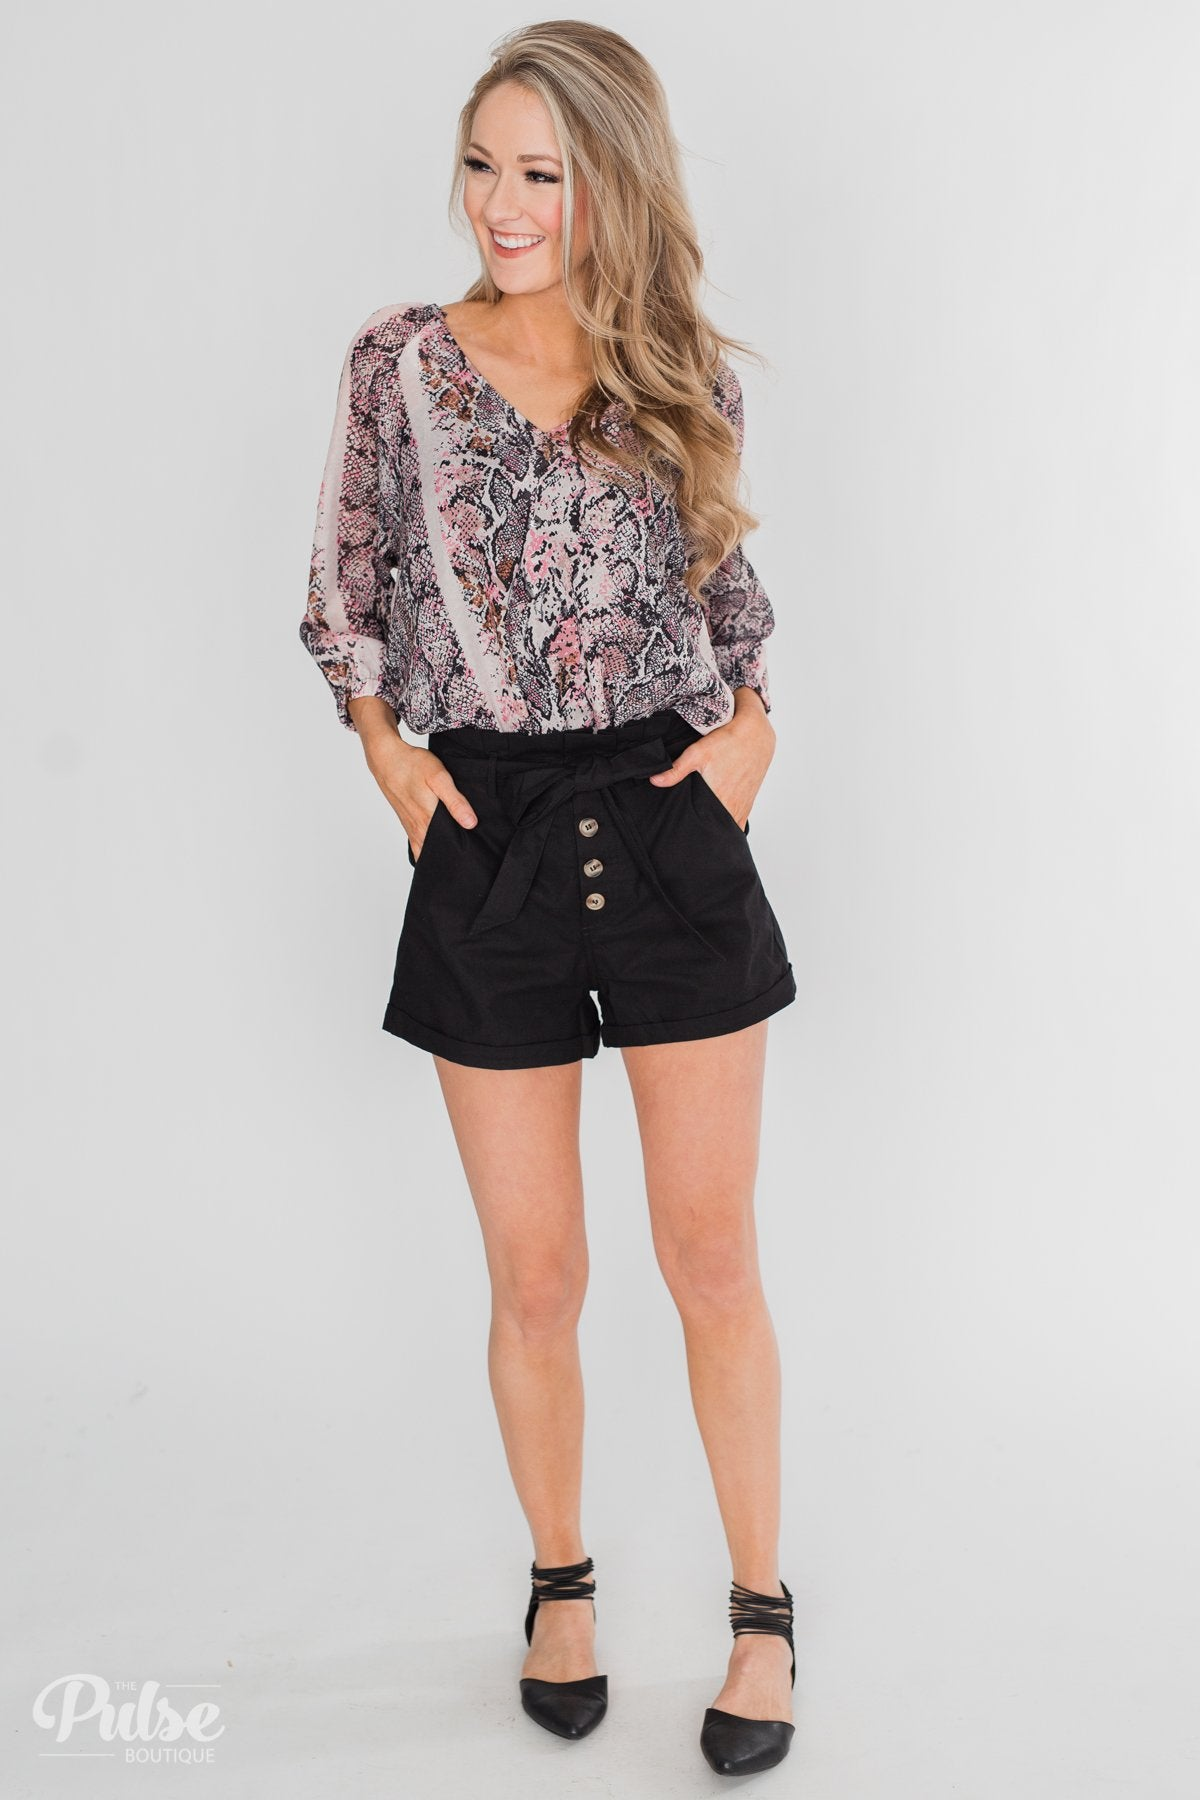 Chic & Untamed V-Neck Printed Blouse- Pink & Black